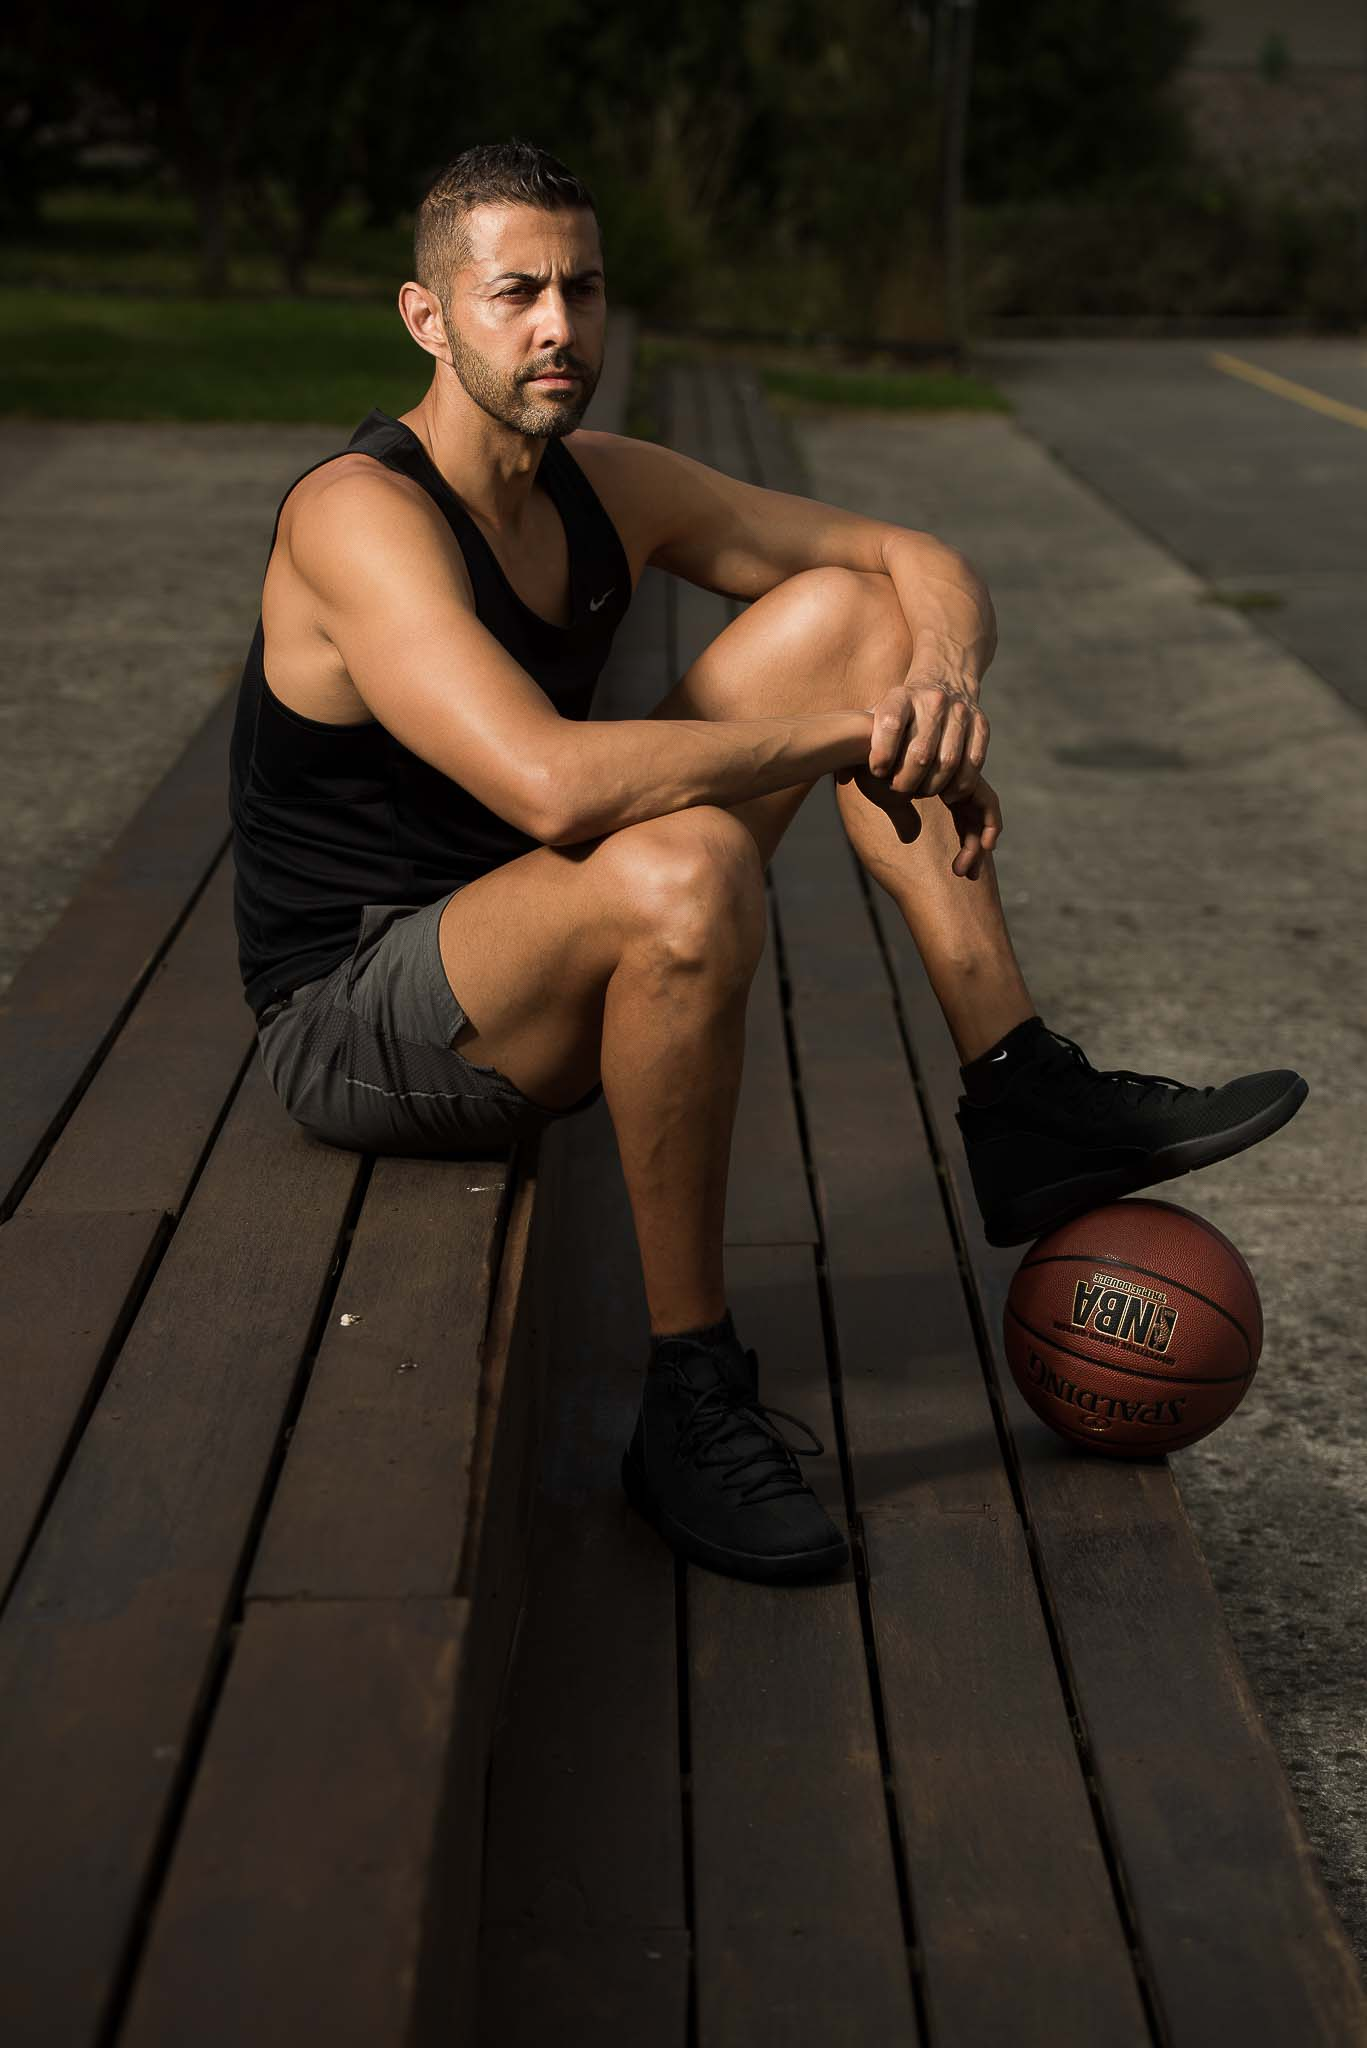 Keith Melbourne's personal trainer posing with his foot on a Basketball